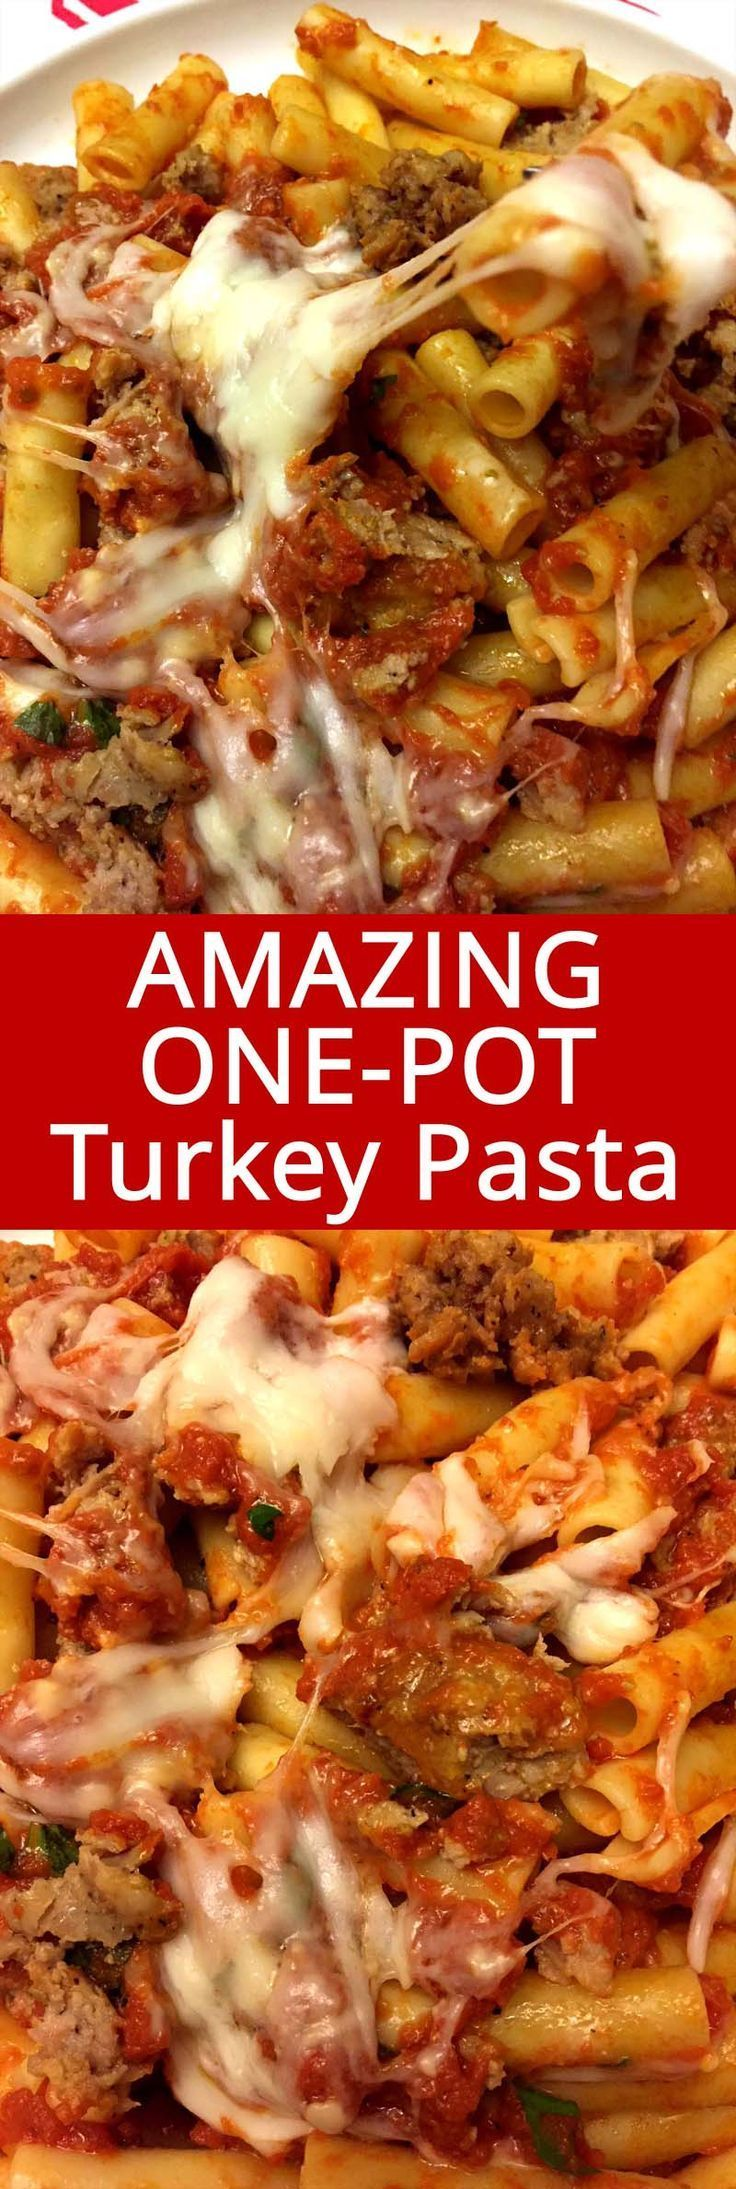 One-Pot Pasta Recipe With Ground Meat – Easy 20 Minute Meal!